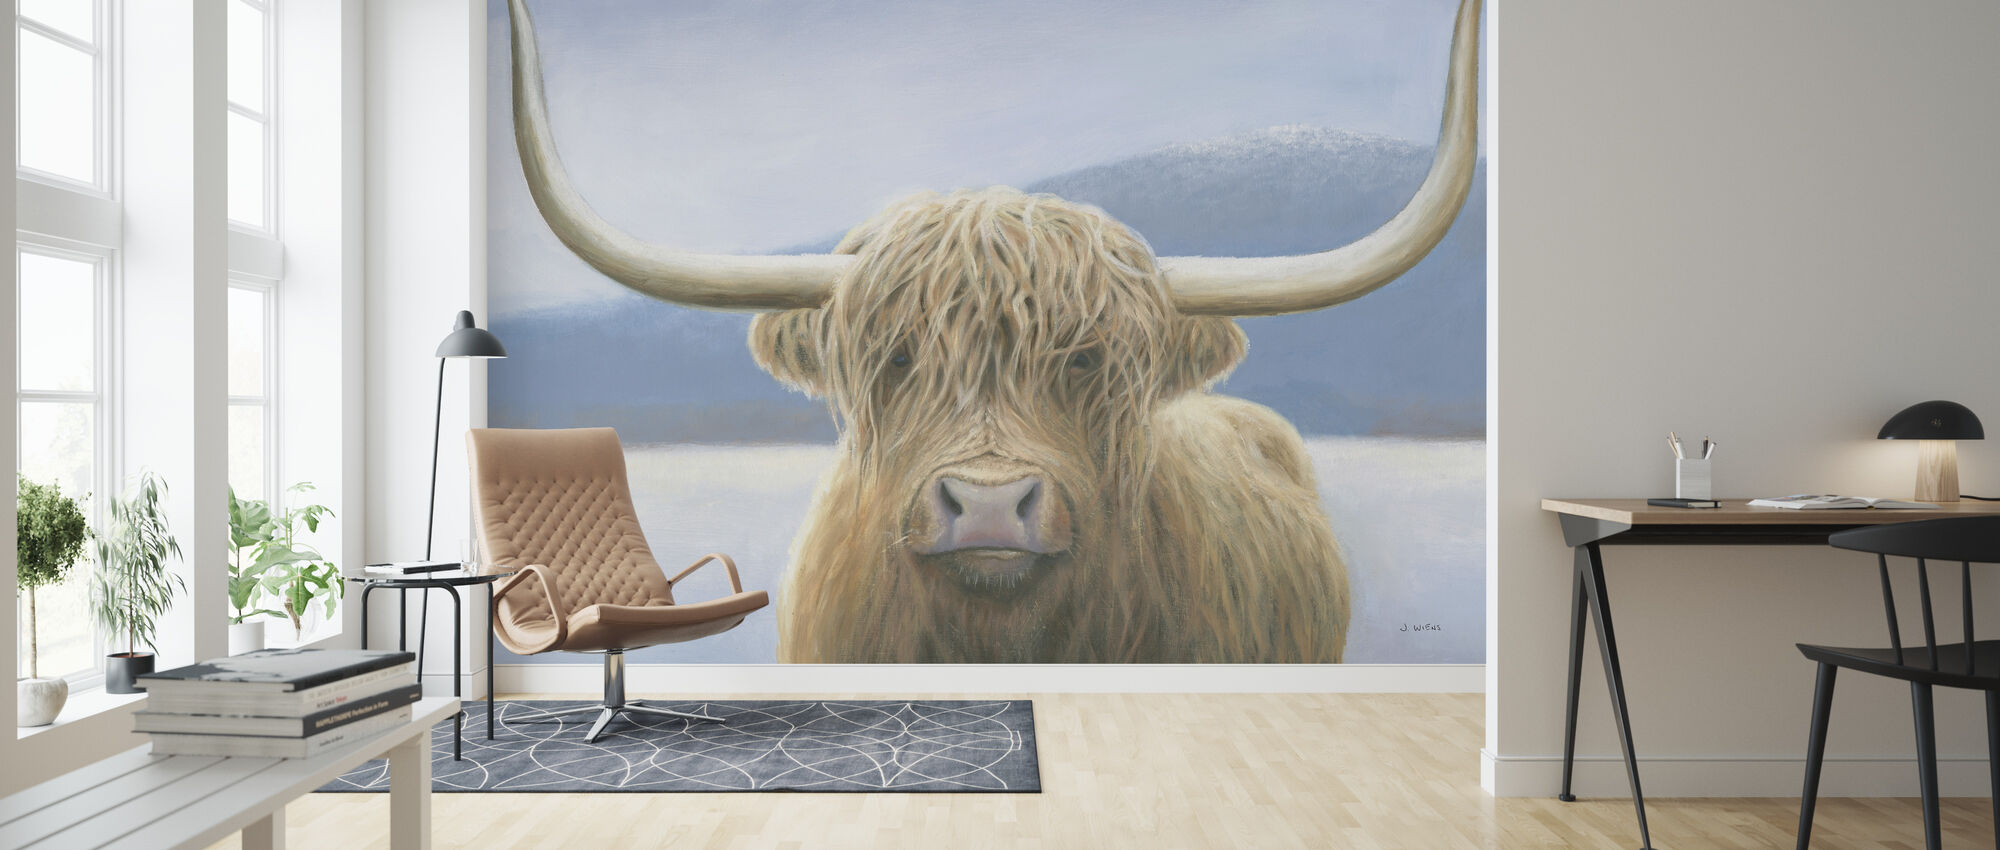 Highland Cow - Wallpaper - Living Room